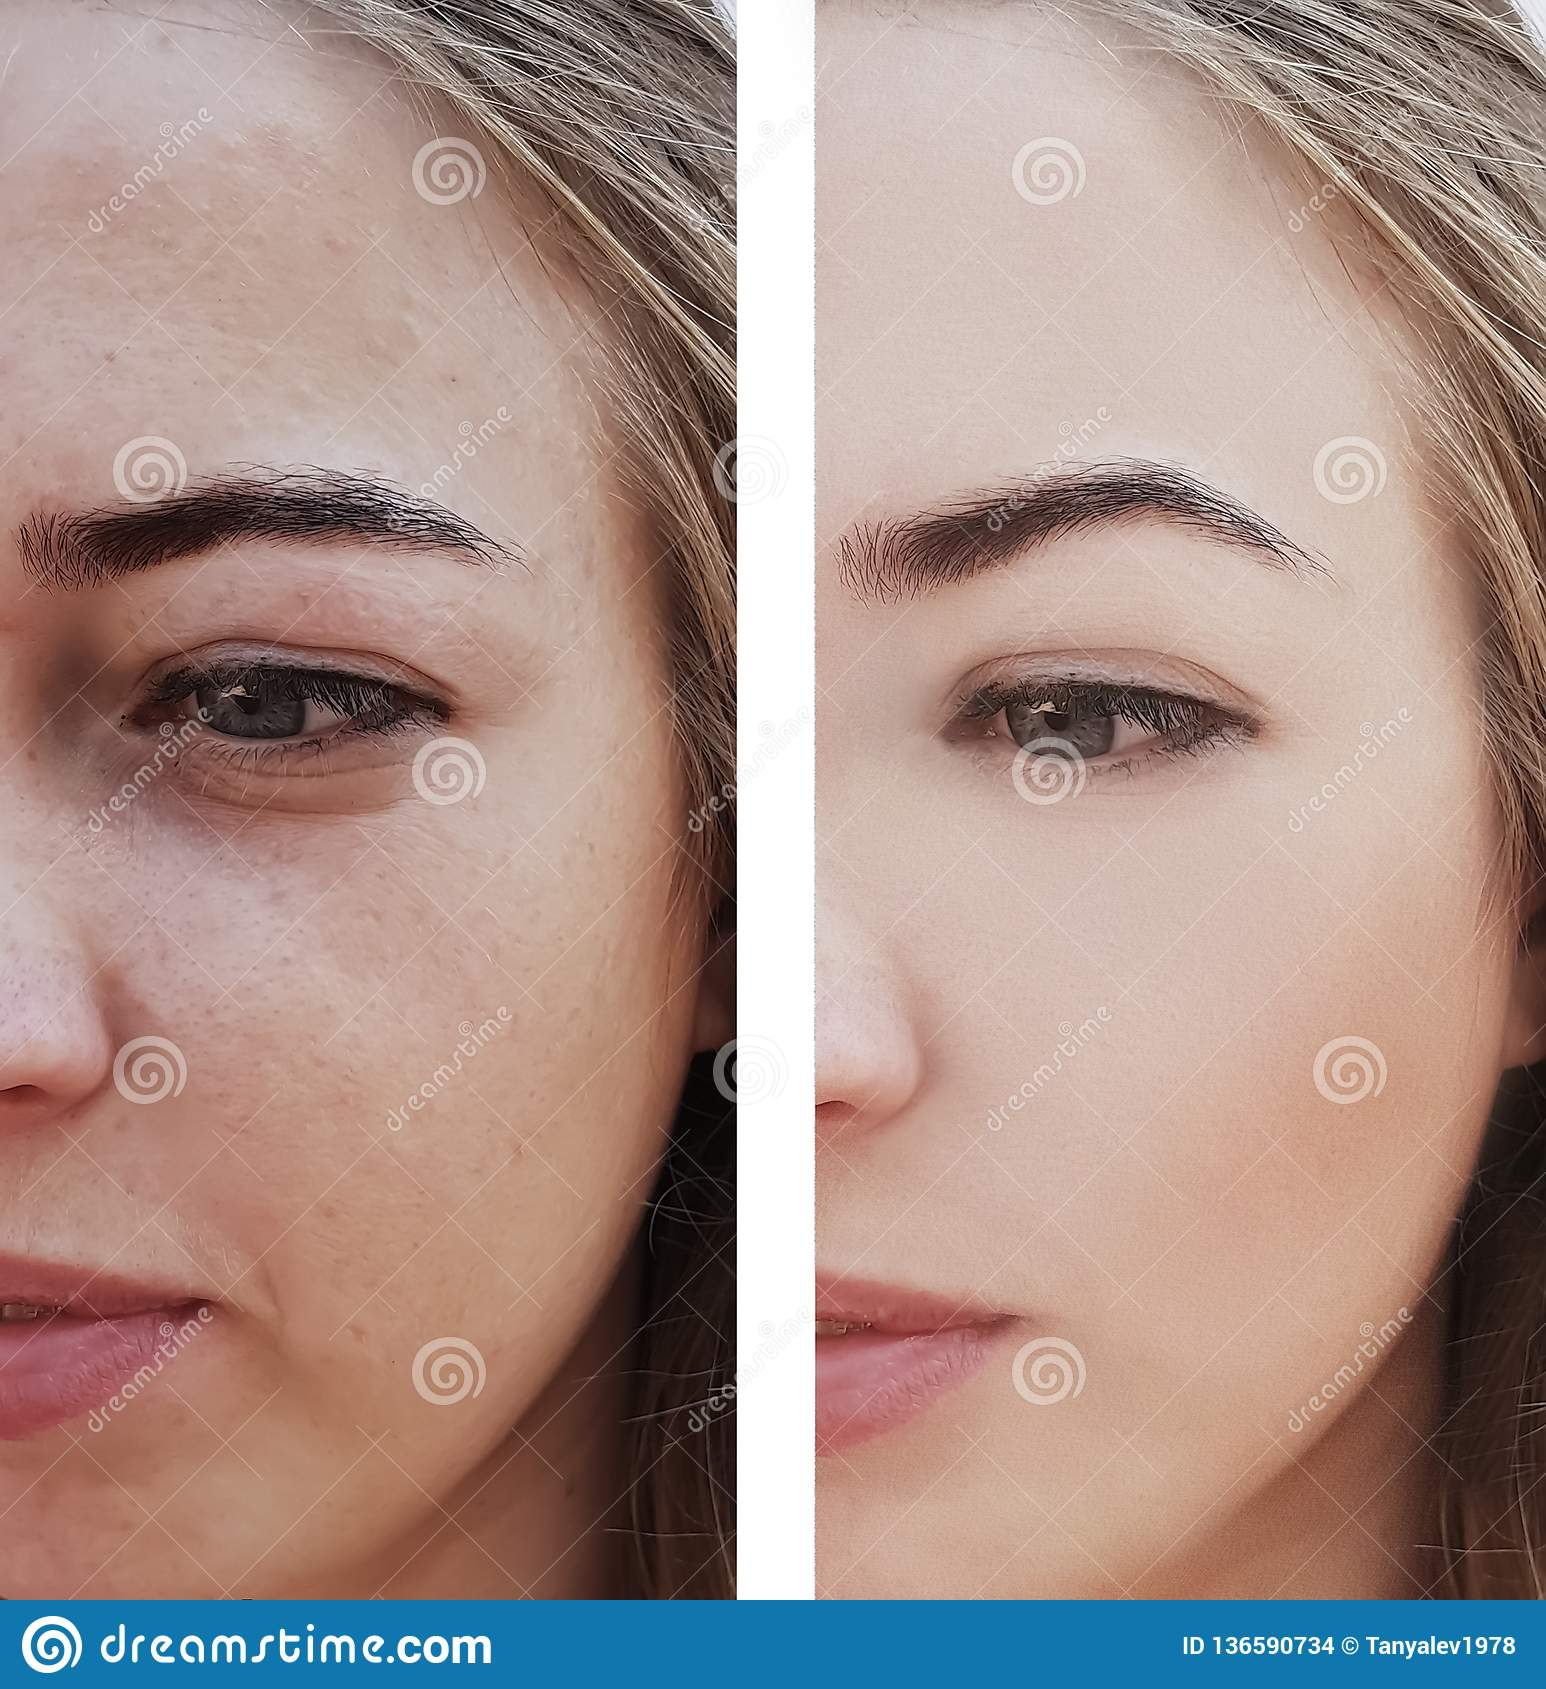 Girl Wrinkles Eyes Before And After Removal Procedures, Bags